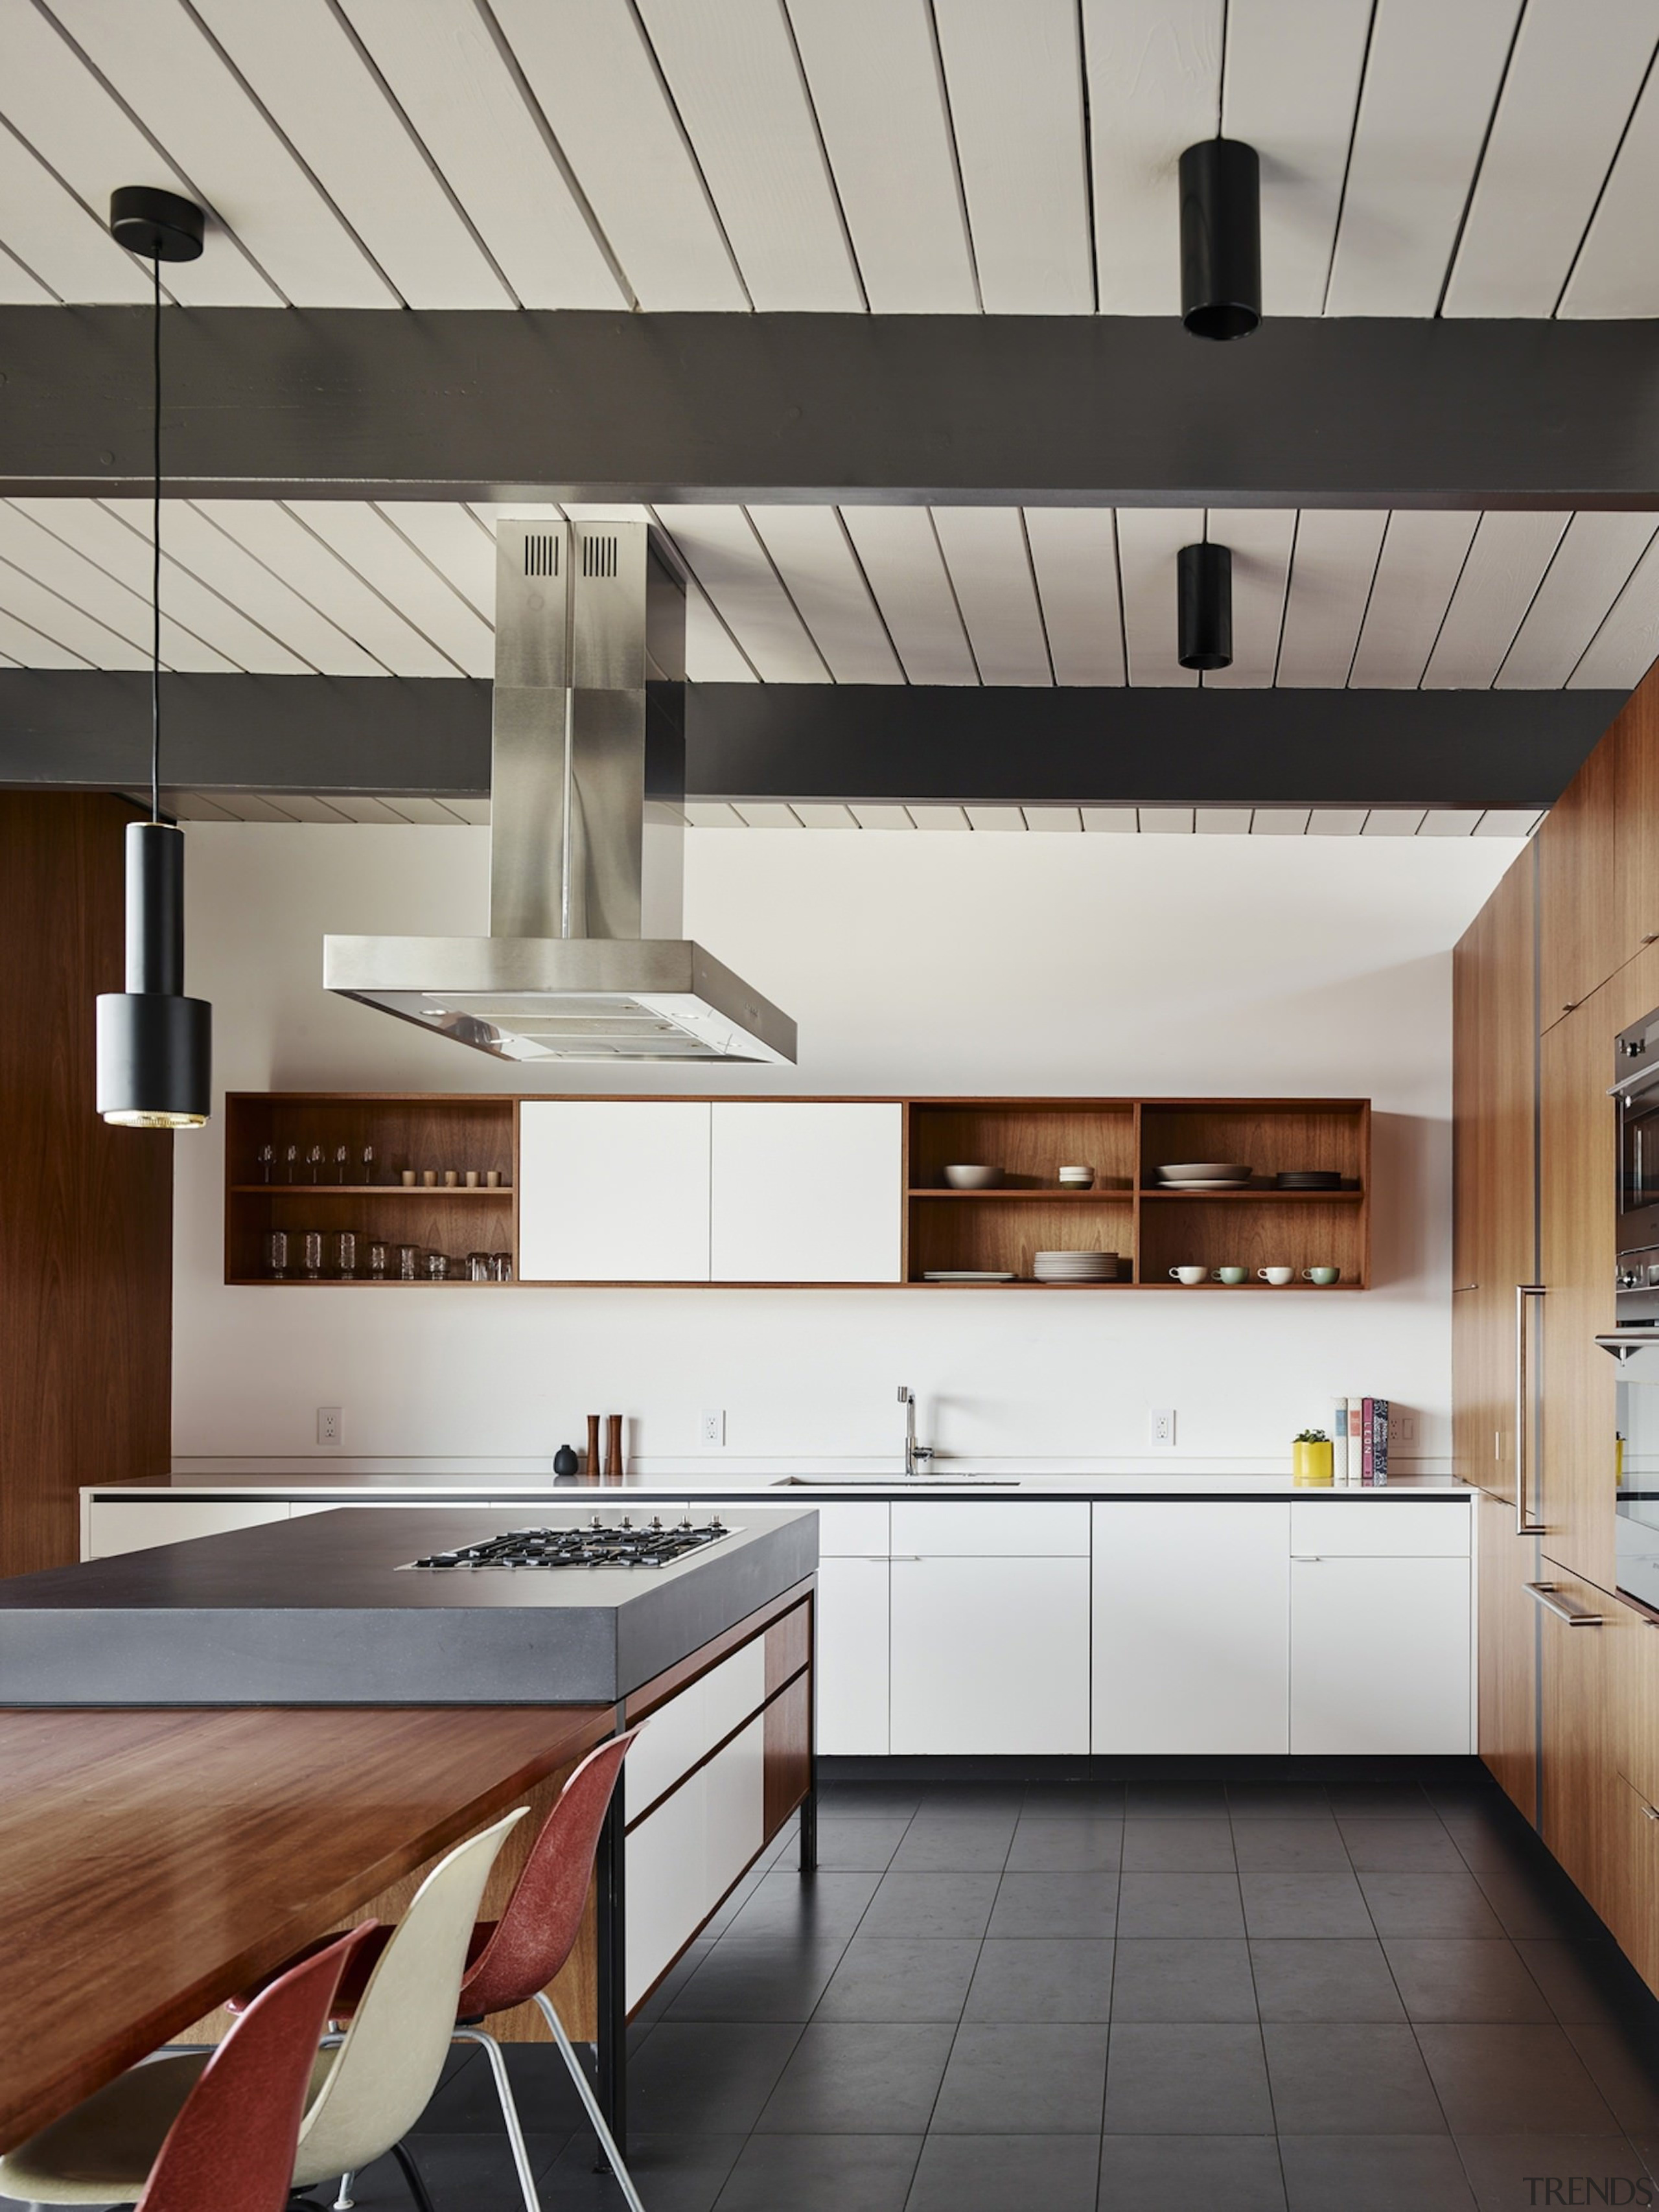 A number of materials help create a unique cabinetry, ceiling, countertop, cuisine classique, interior design, kitchen, product design, gray